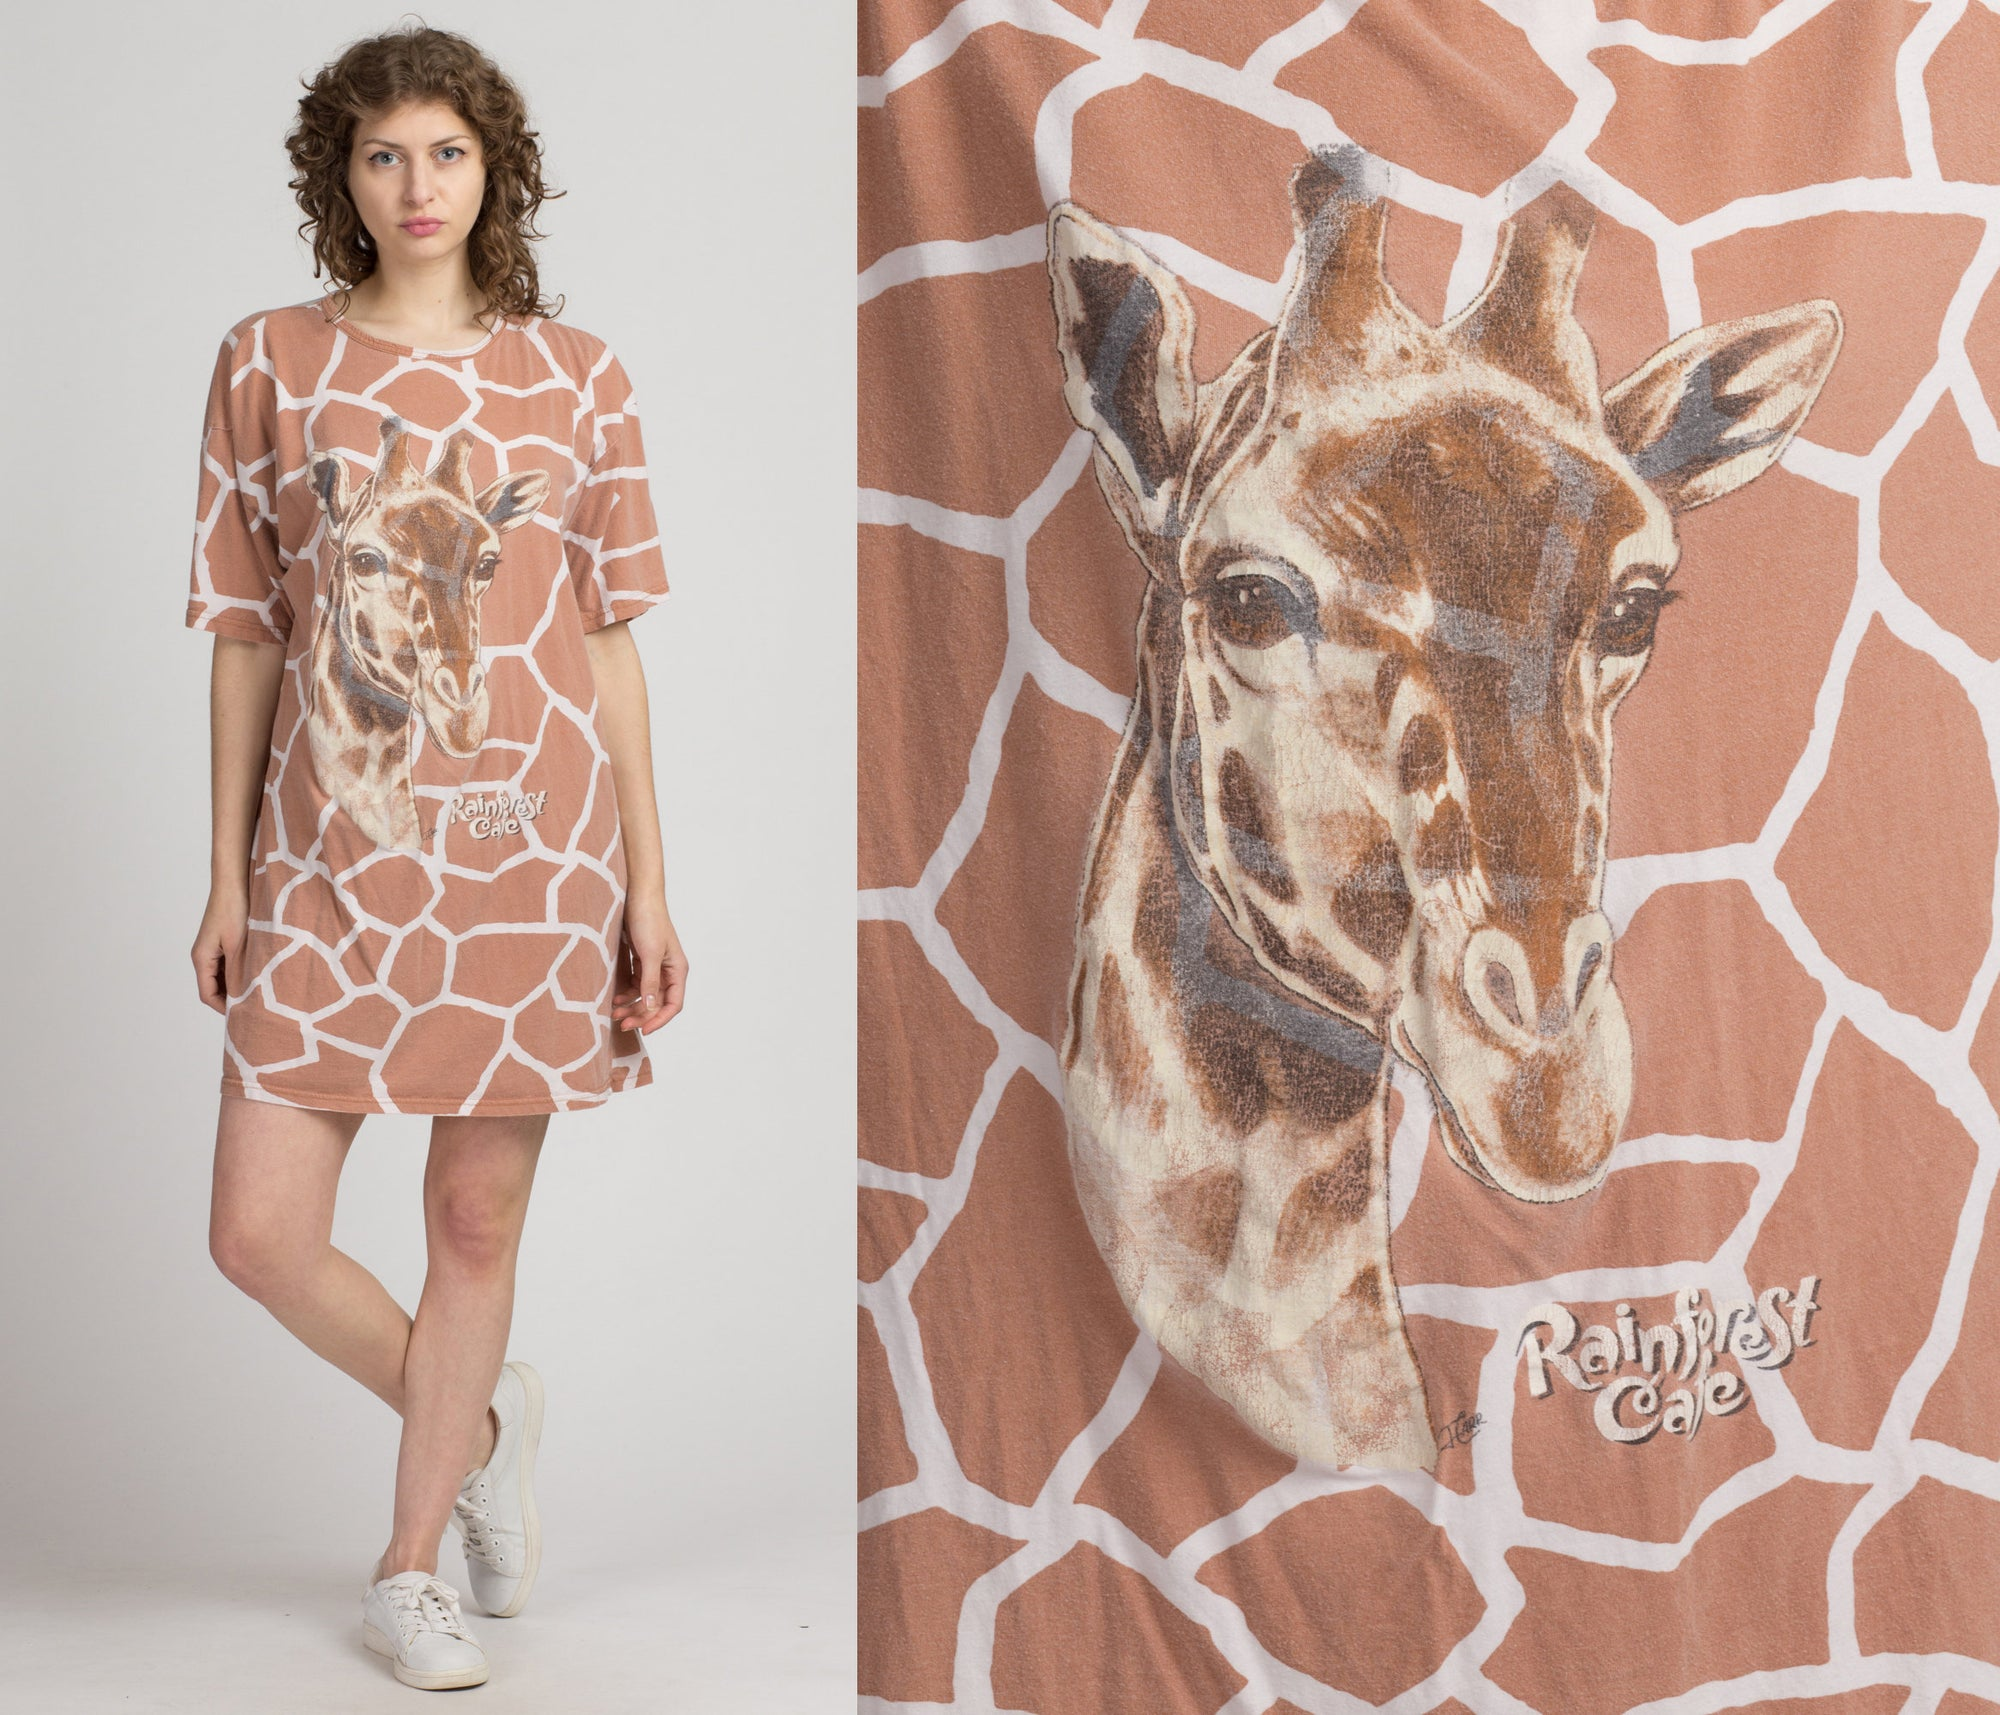 90s Giraffe All Over Print T Shirt - One Size | Vintage Oversize Rainforest Cafe Animal Graphic Tee